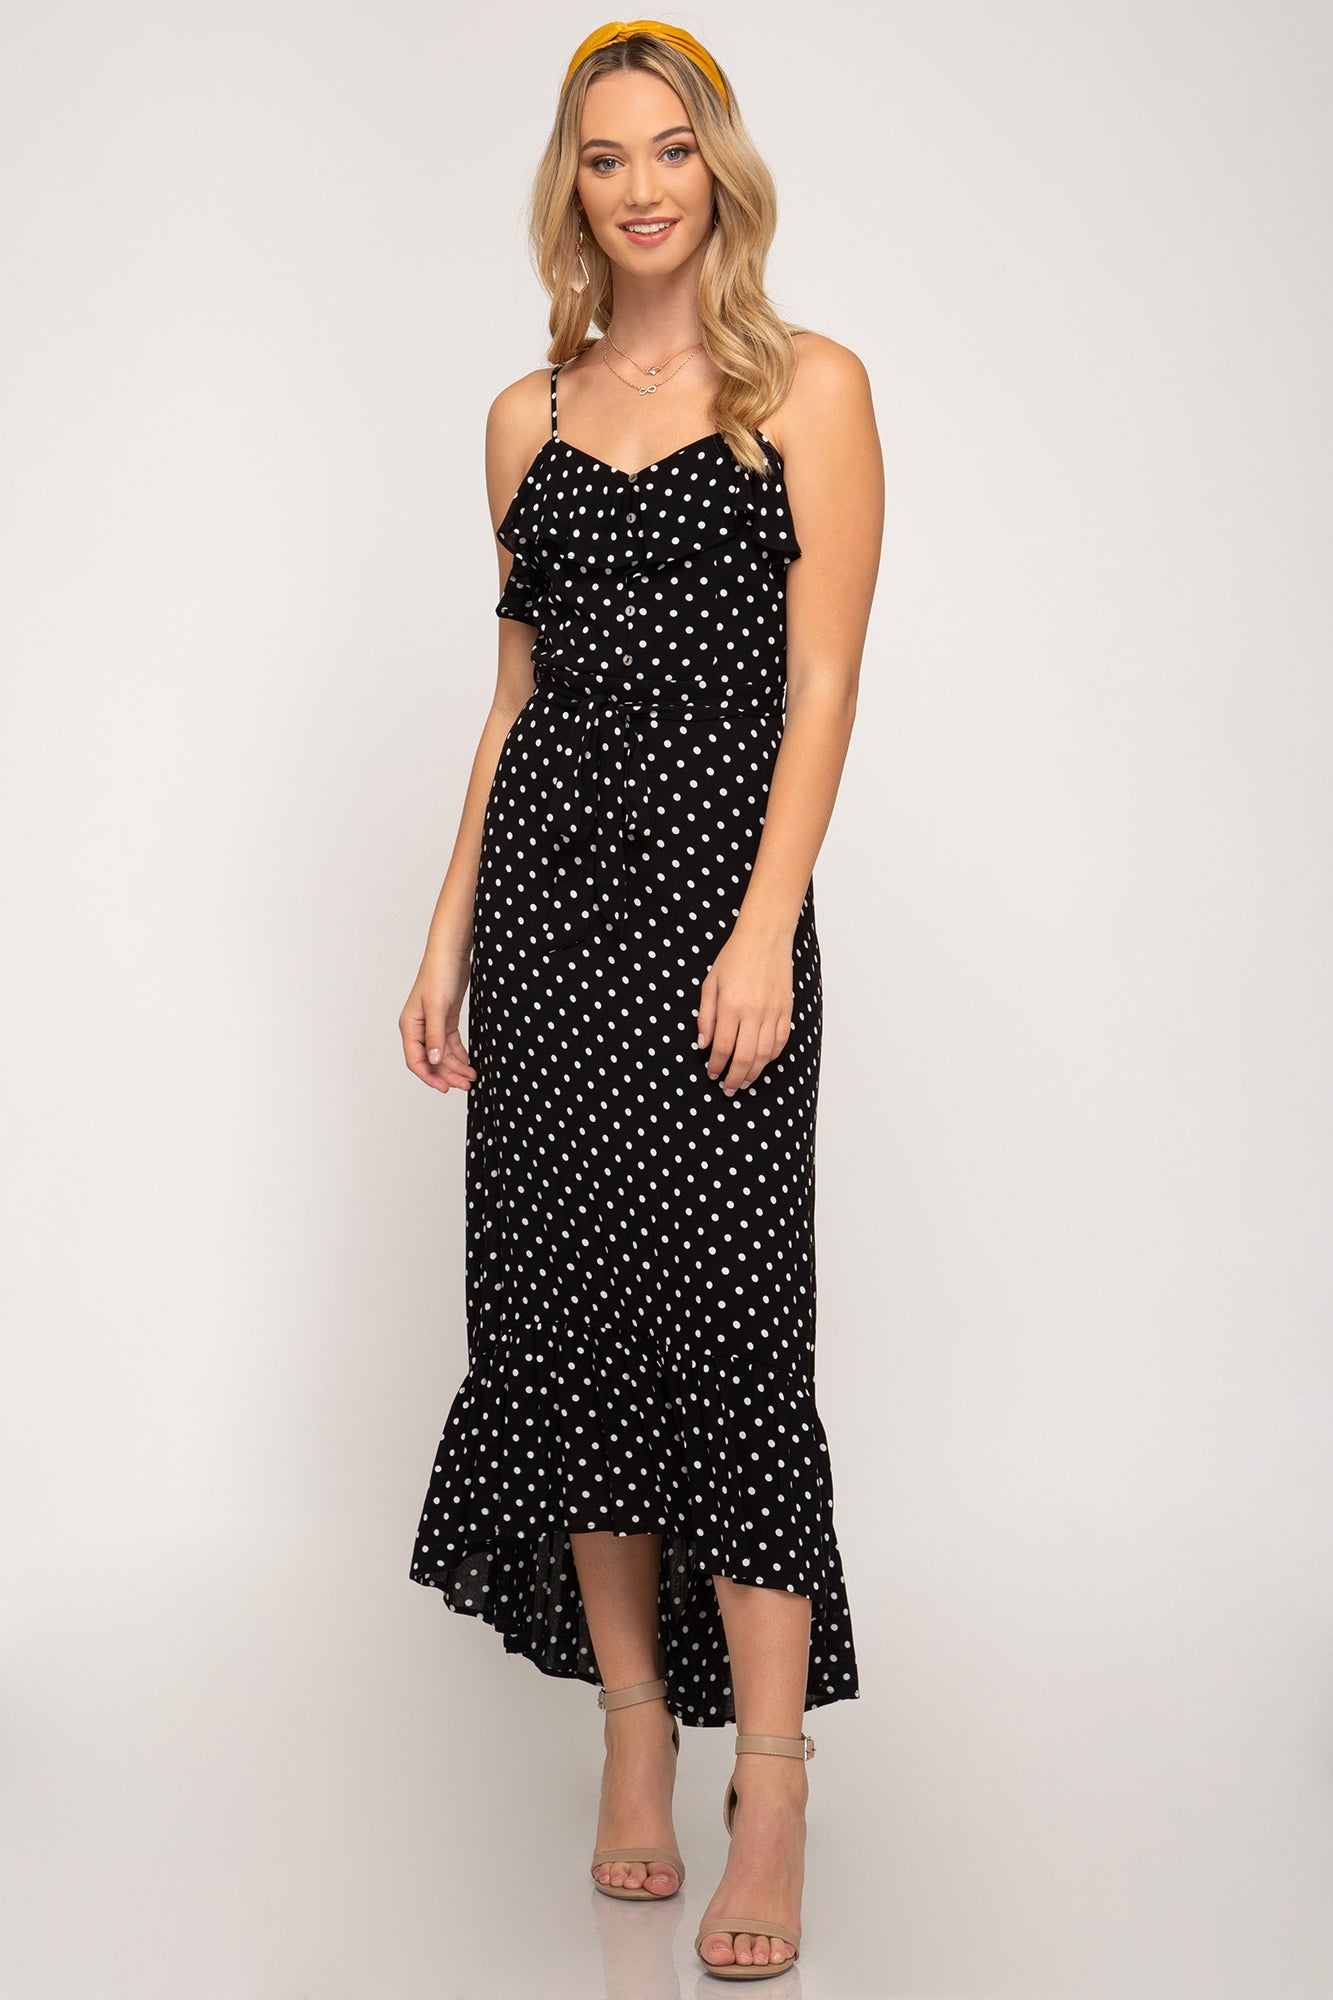 RUFFLED POLKA DOT WOVEN CAMI HI LOW MAXI DRESS